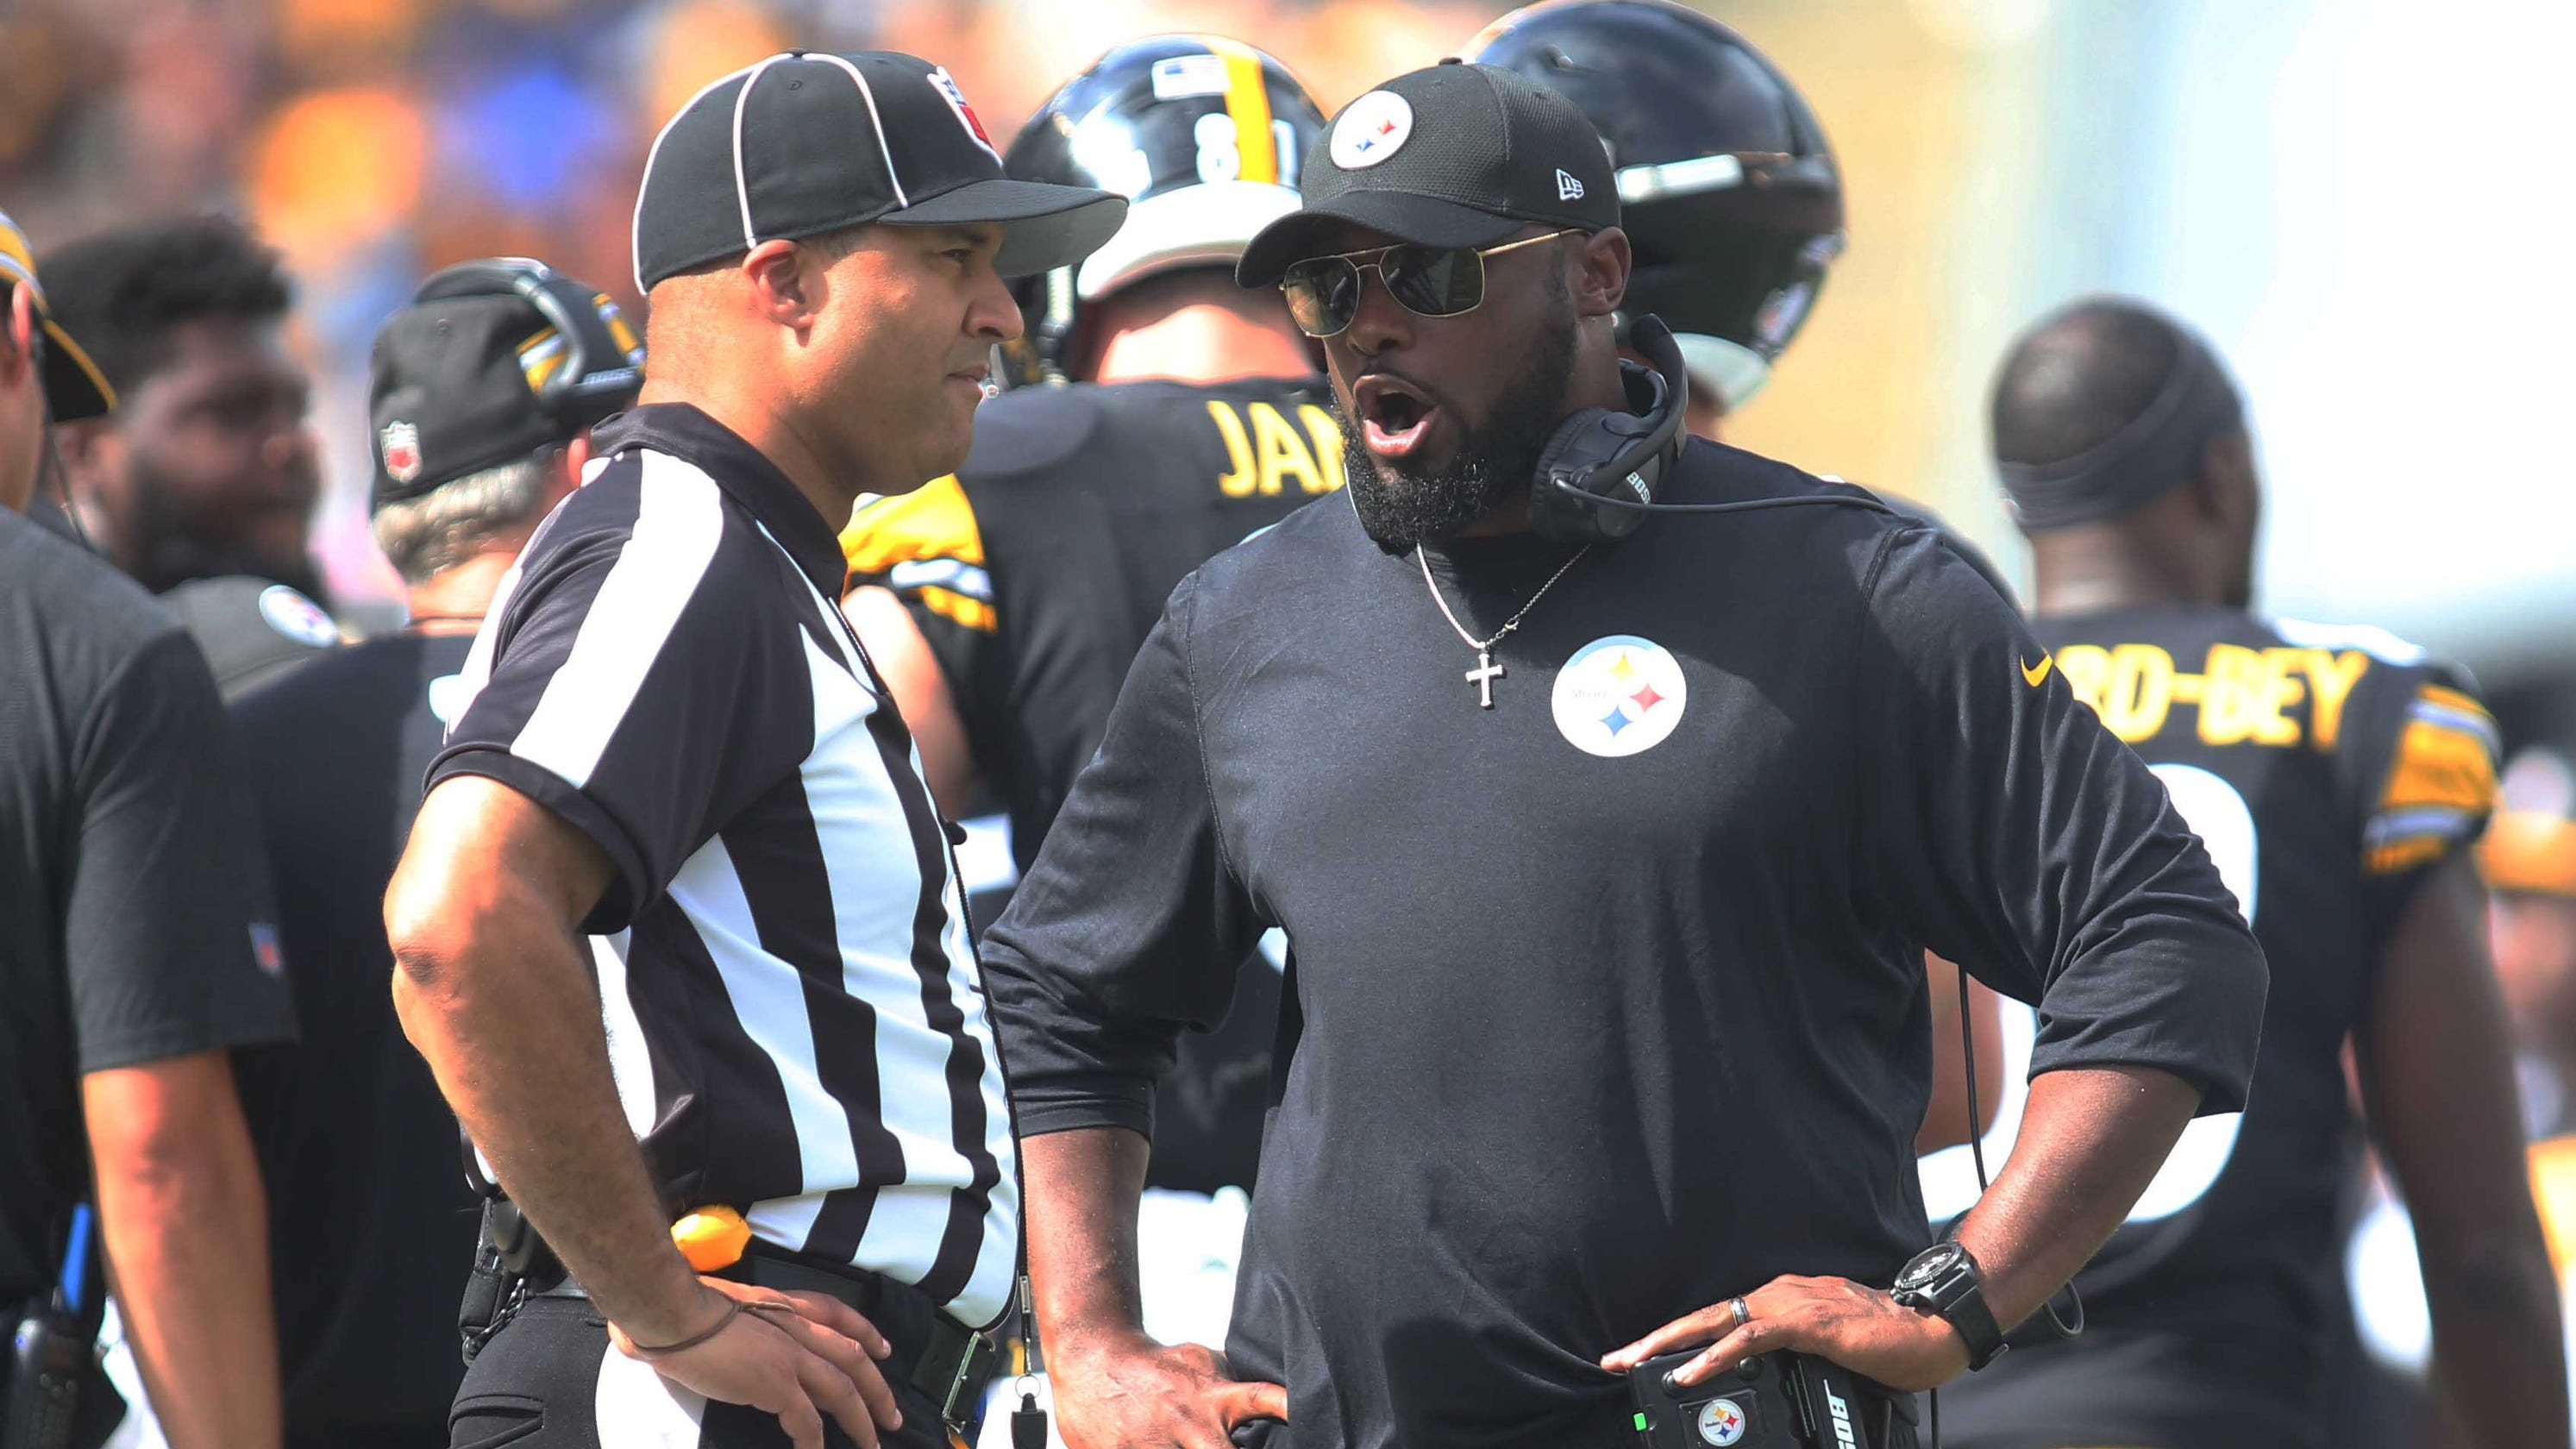 NFL's officiating problems have quieted down, but some issues remain